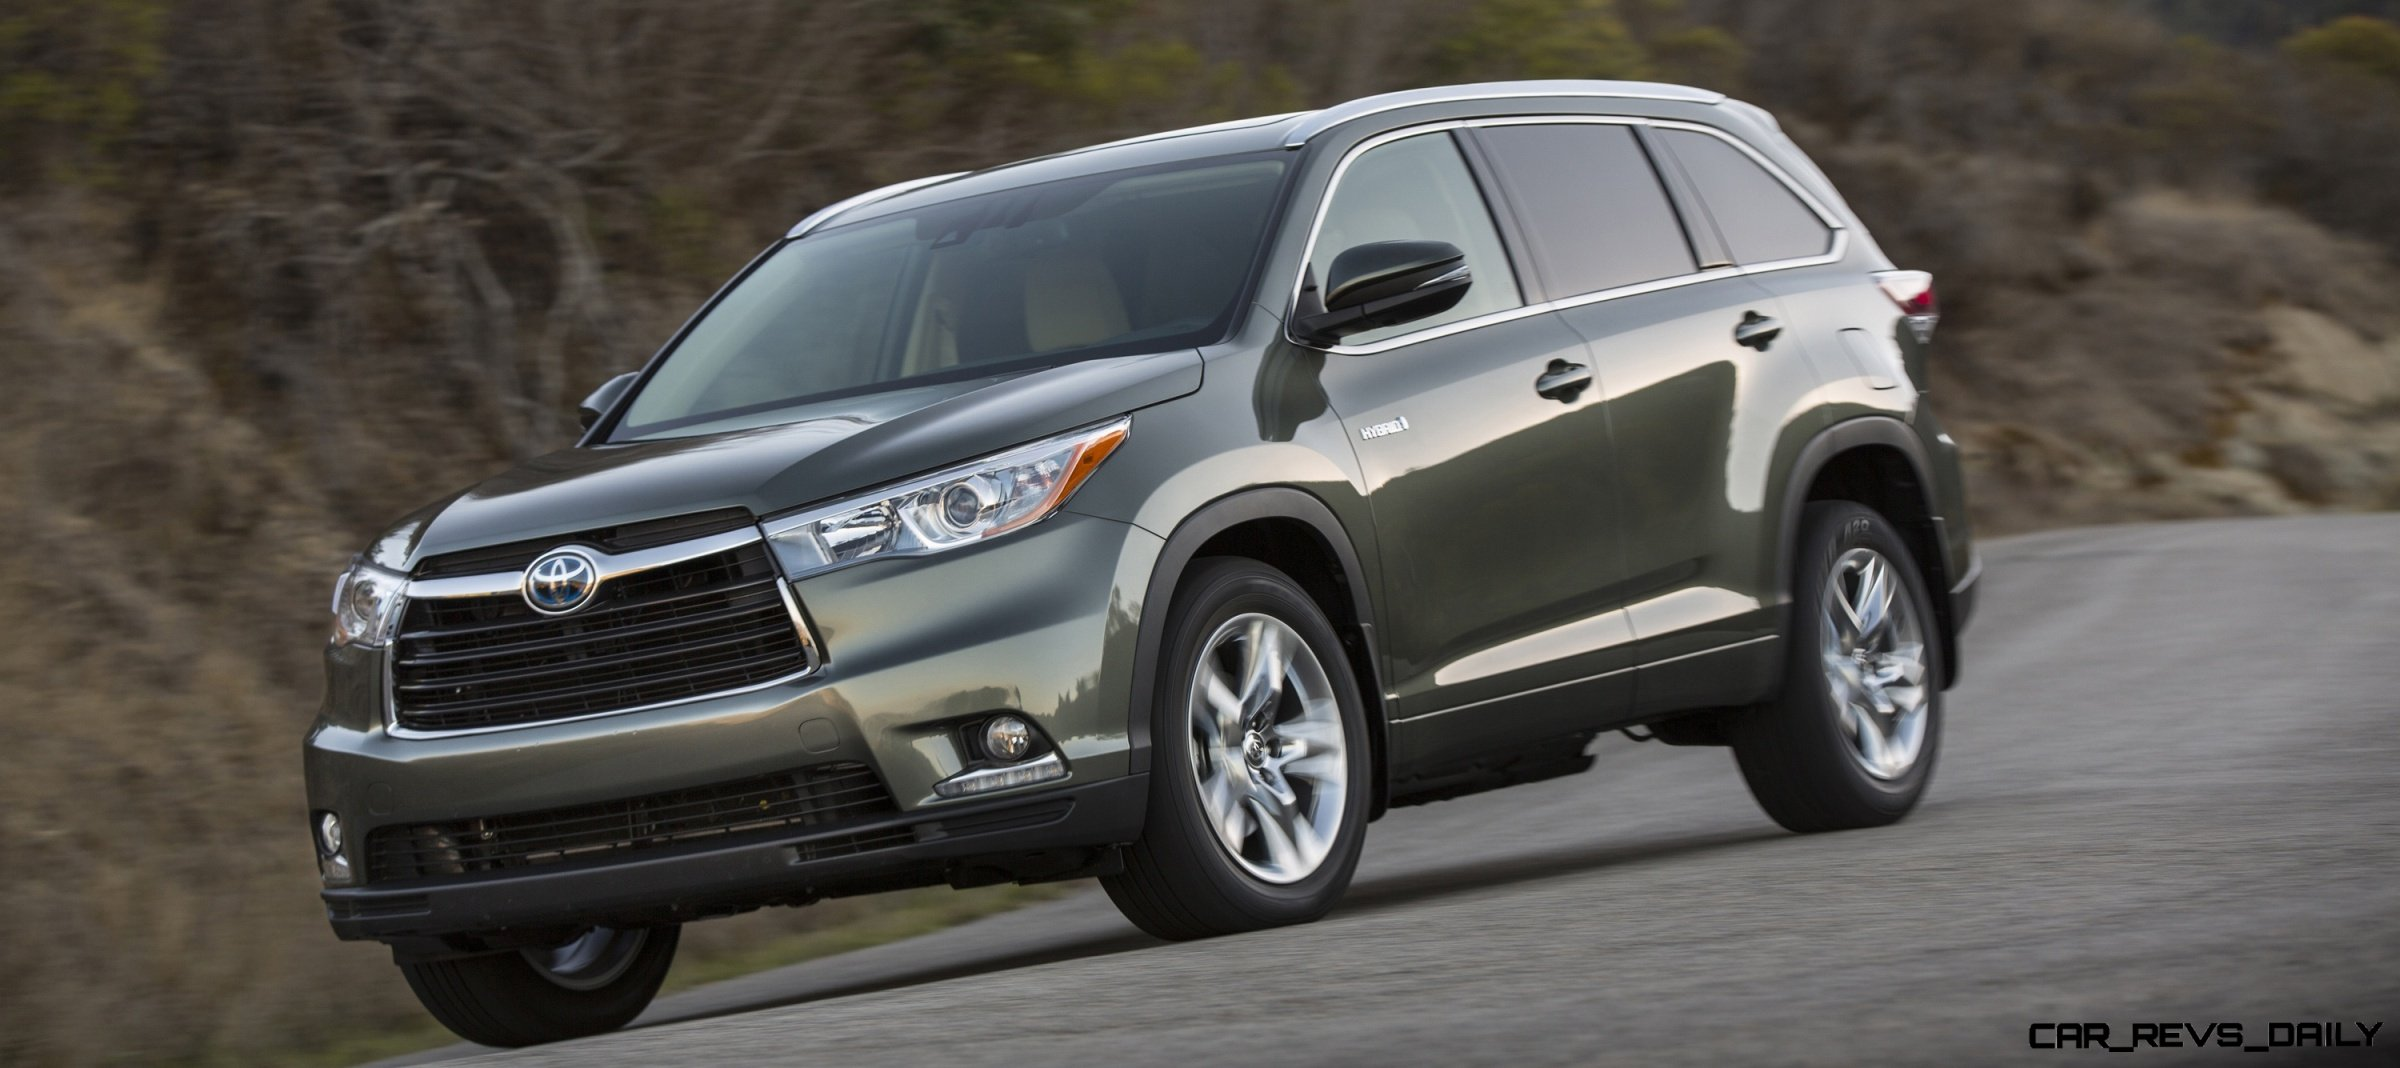 Carrevsdaily 2014 toyota highlander exterior photo15 Toyota highlander 2014 exterior